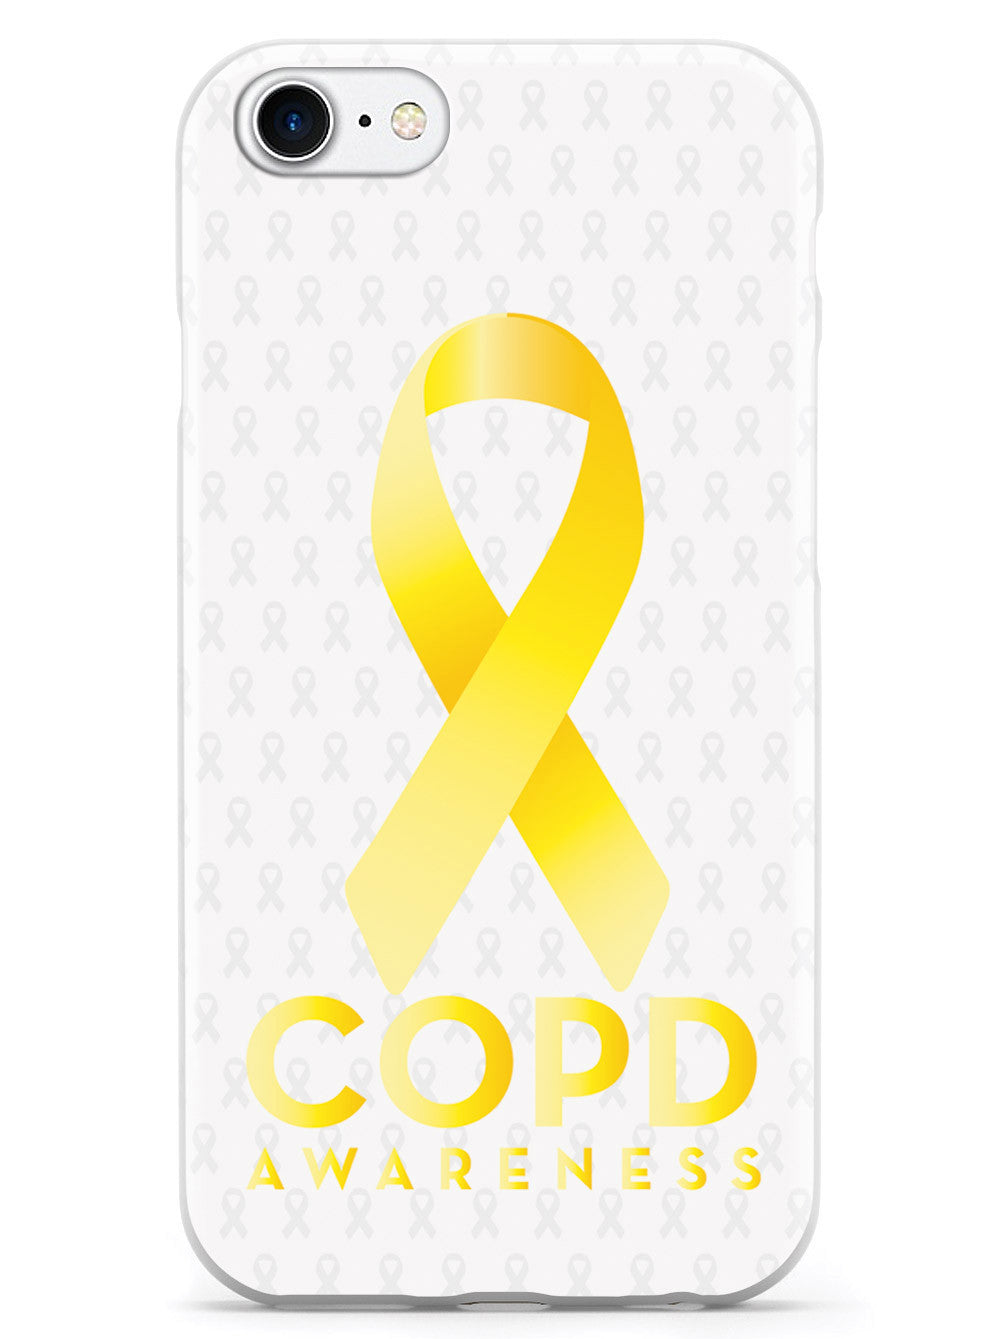 COPD Awareness - White Case